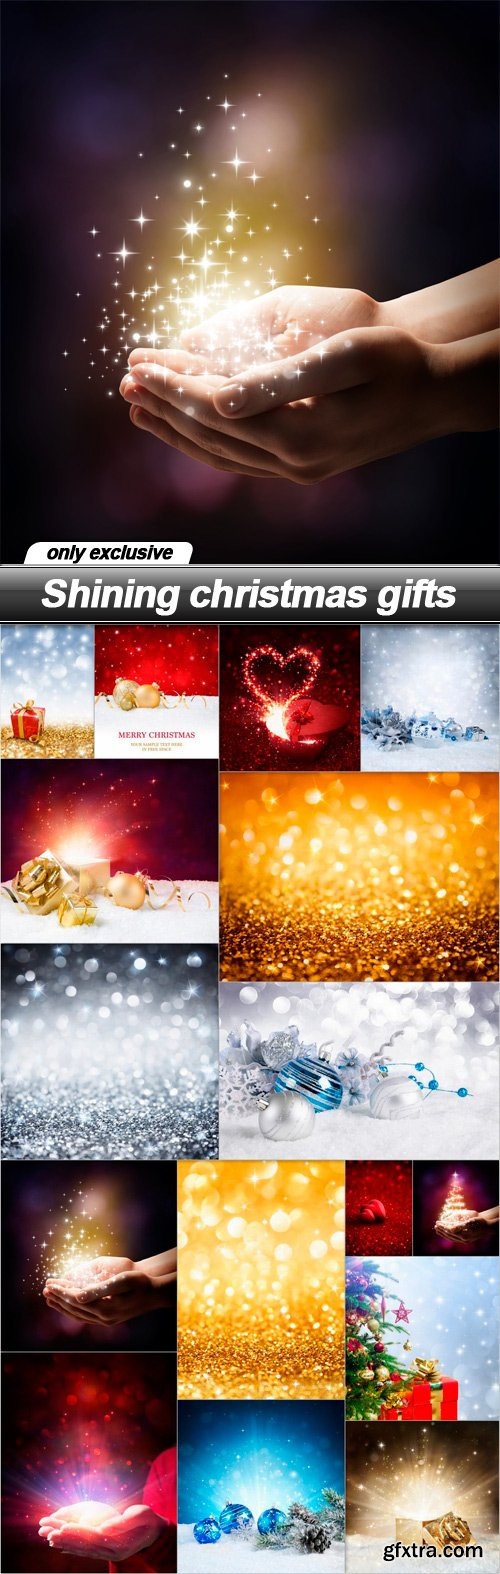 Shining christmas gifts - 16 UHQ JPEG